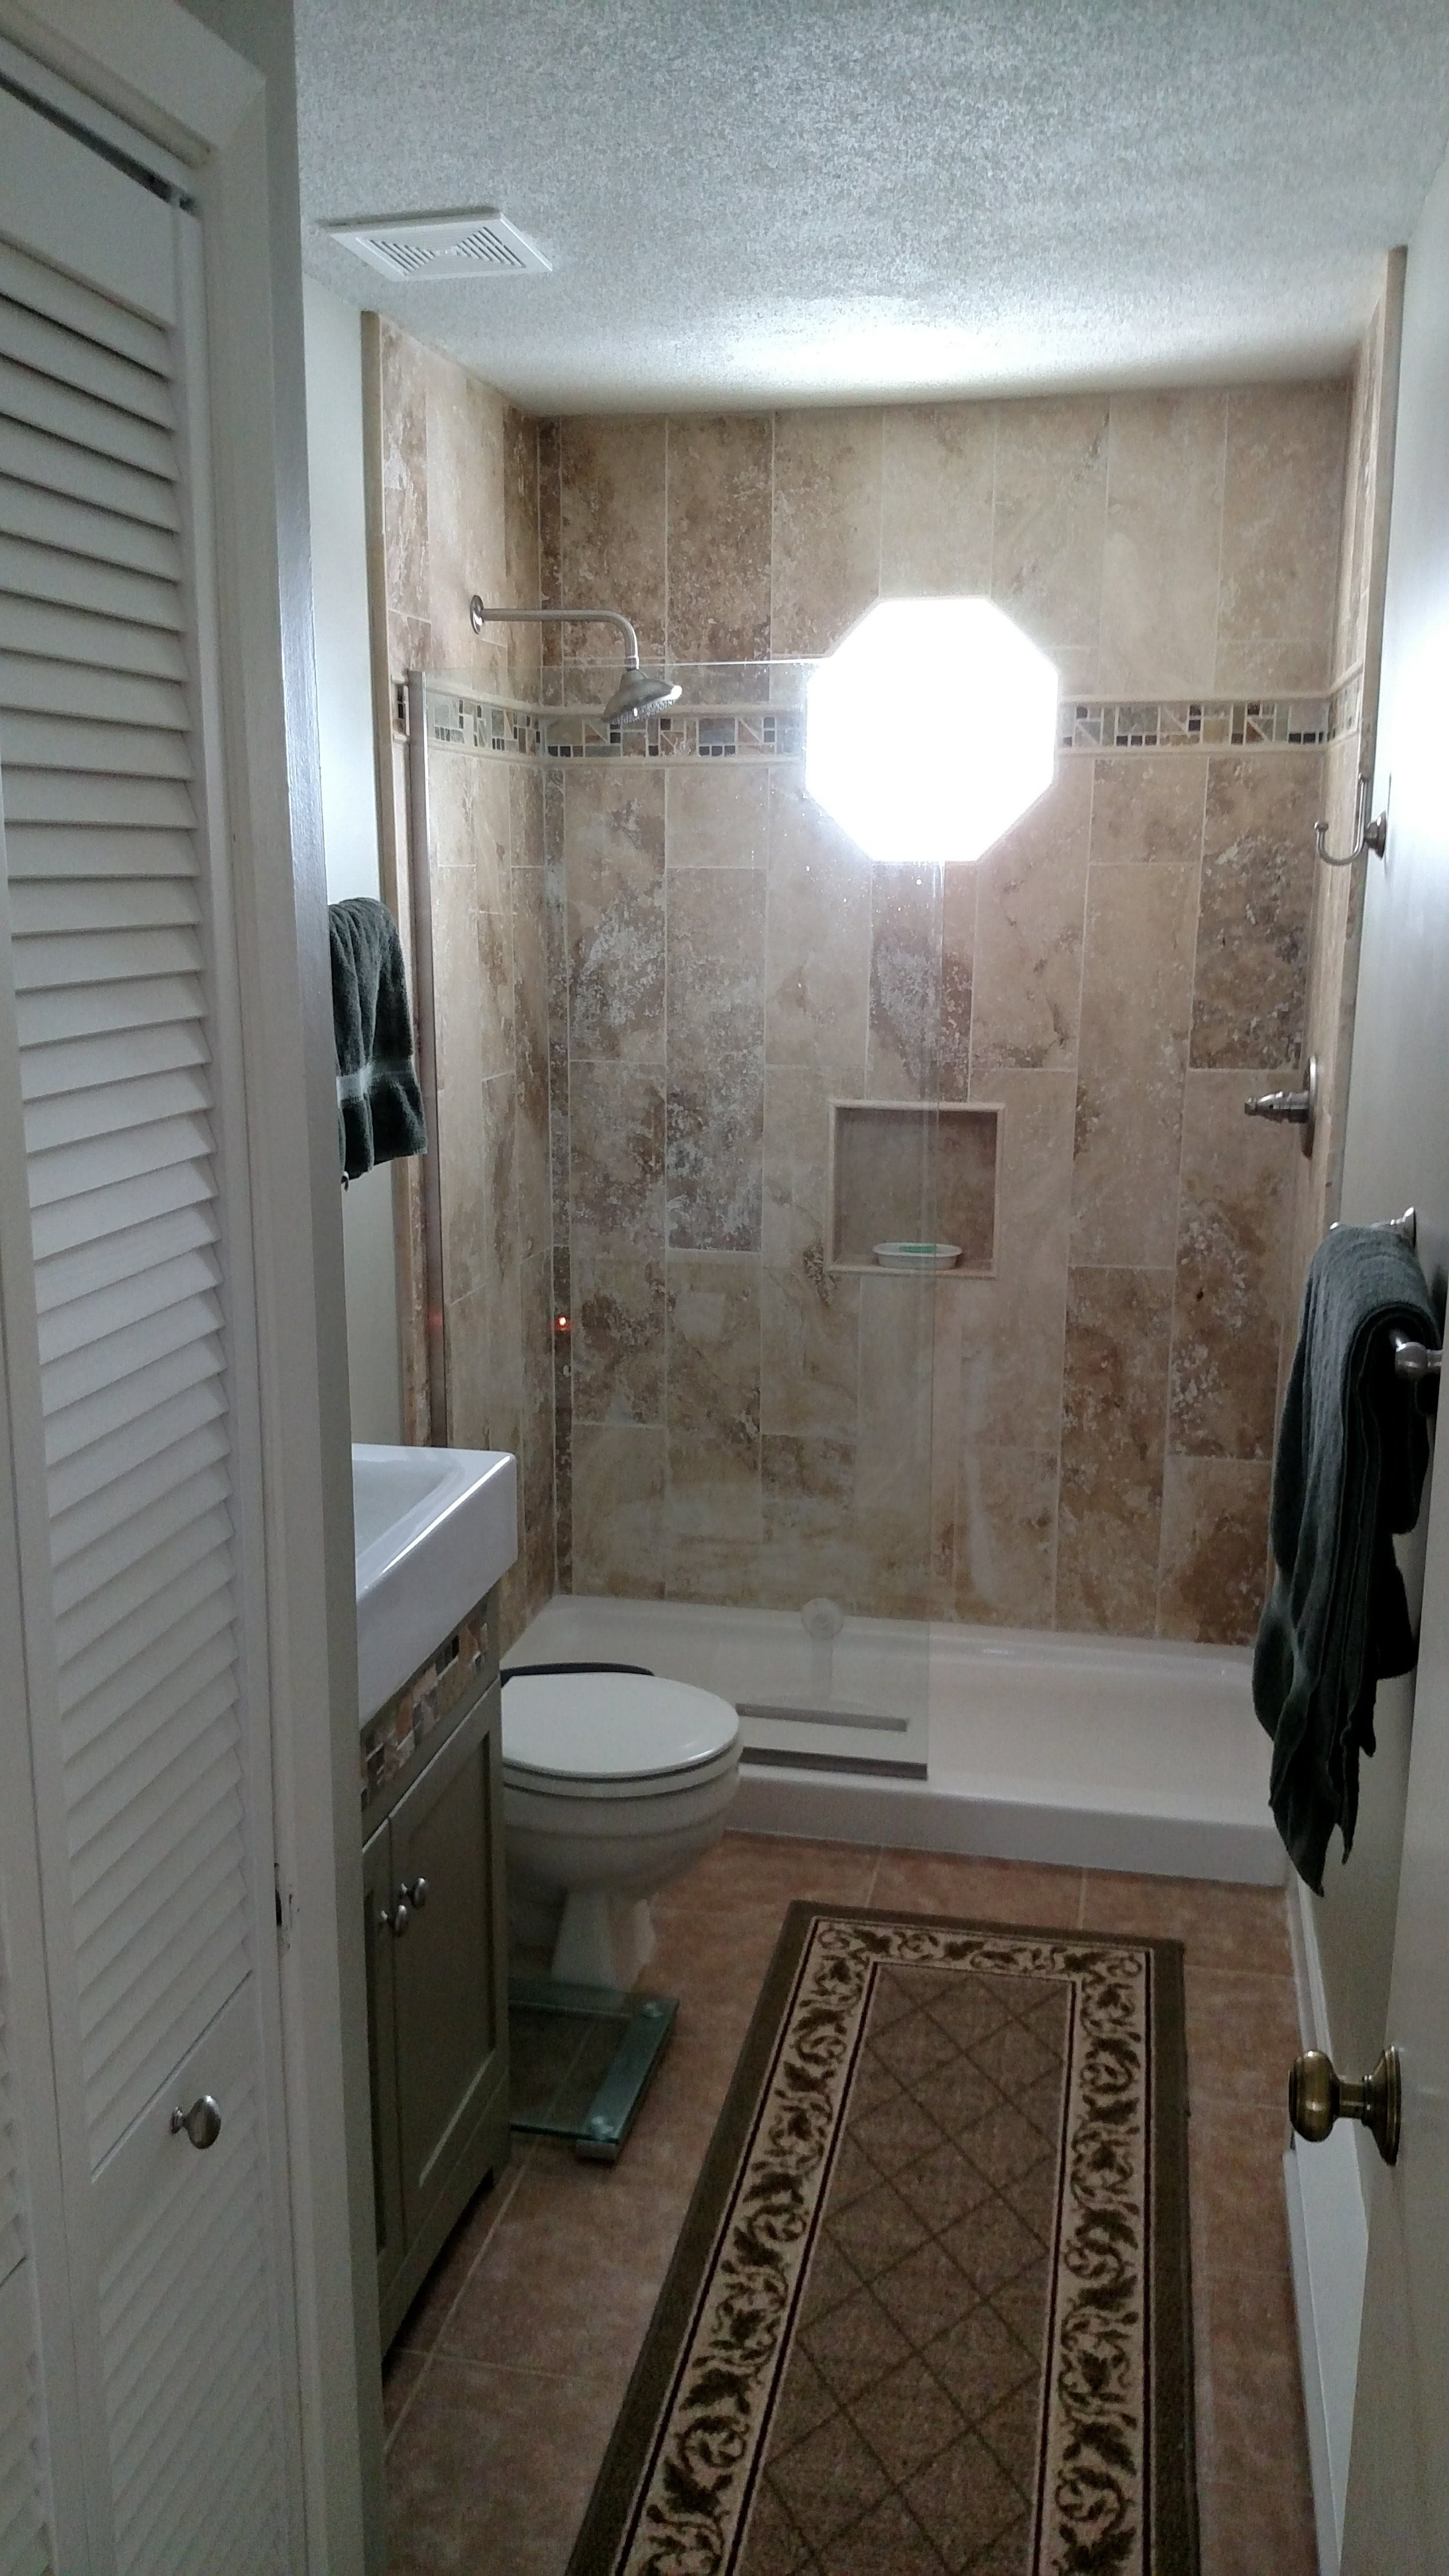 55 Luxury Walk In Shower Tile Ideas That Will Inspire You Part 20 In 2020 Affordable Bathroom Remodel Bathroom Remodel Shower Bathroom Renovation Diy